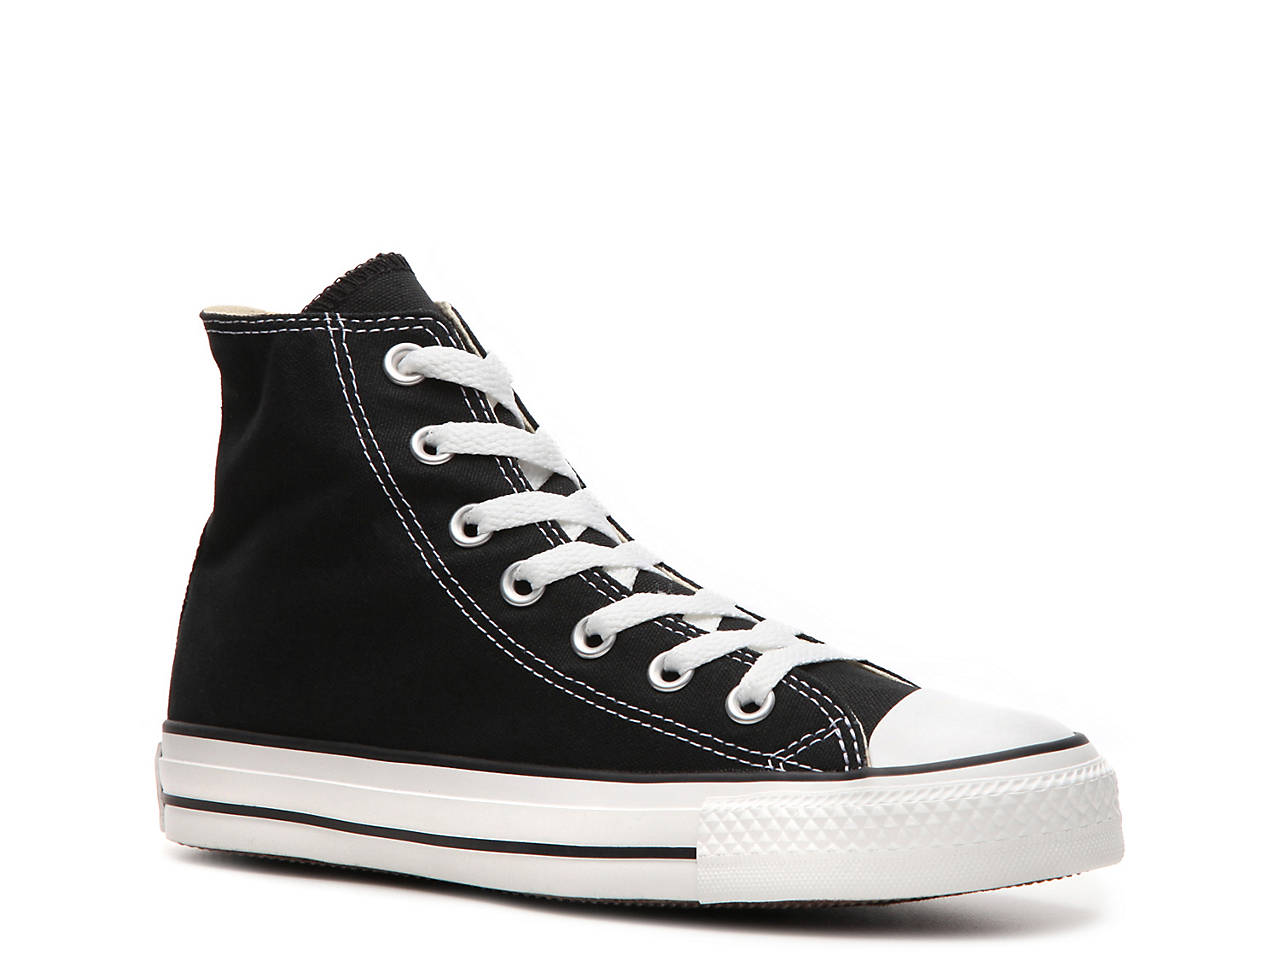 d22b3b62f06c Converse Chuck Taylor All Star High-Top Sneaker - Women s Women s ...